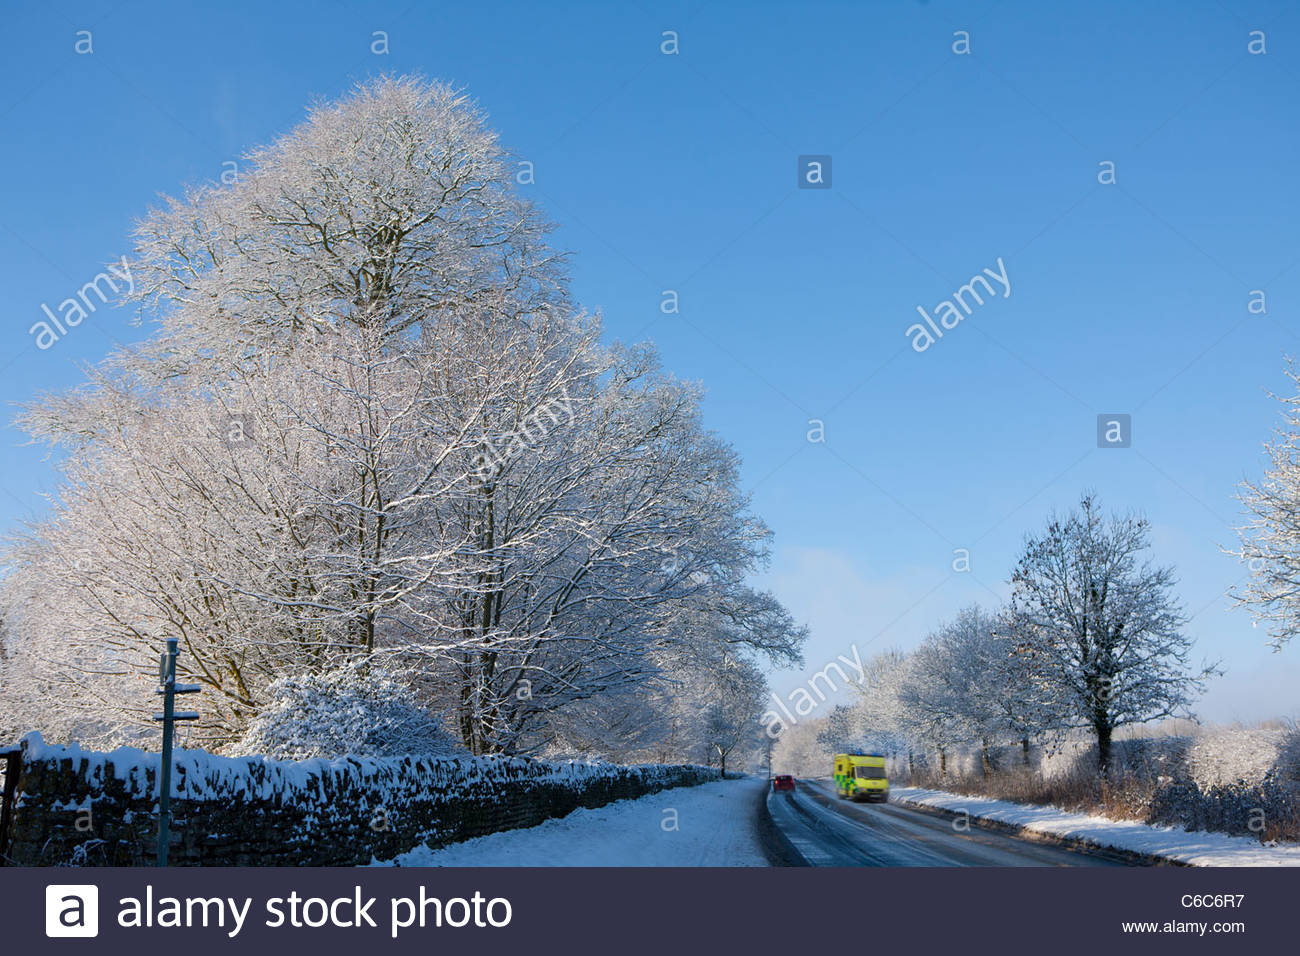 Snow covered trees lining road with traveling cars - Stock Image